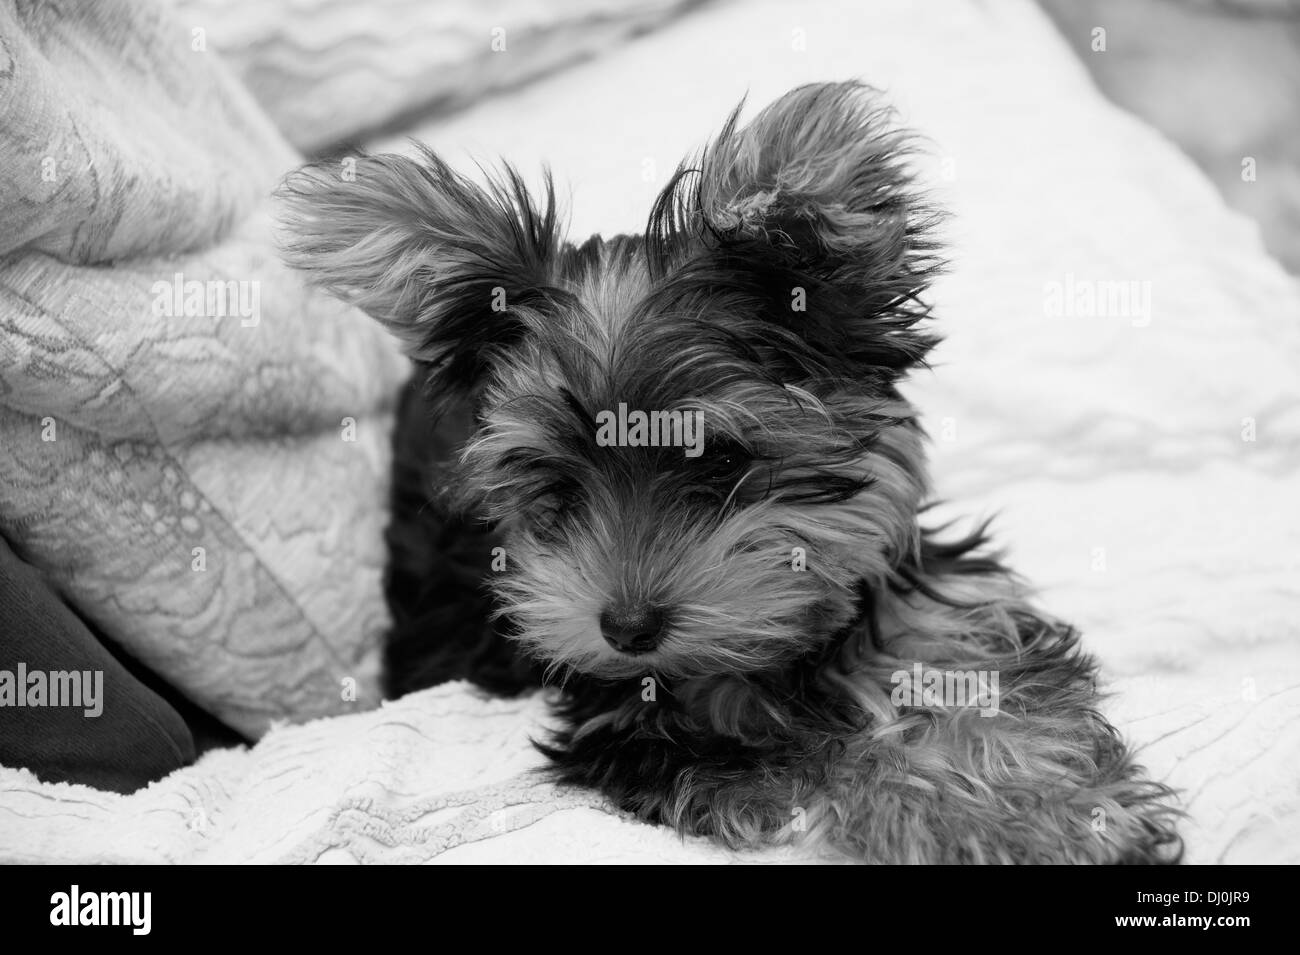 cute yorkshire terrier puppy dog - Stock Image